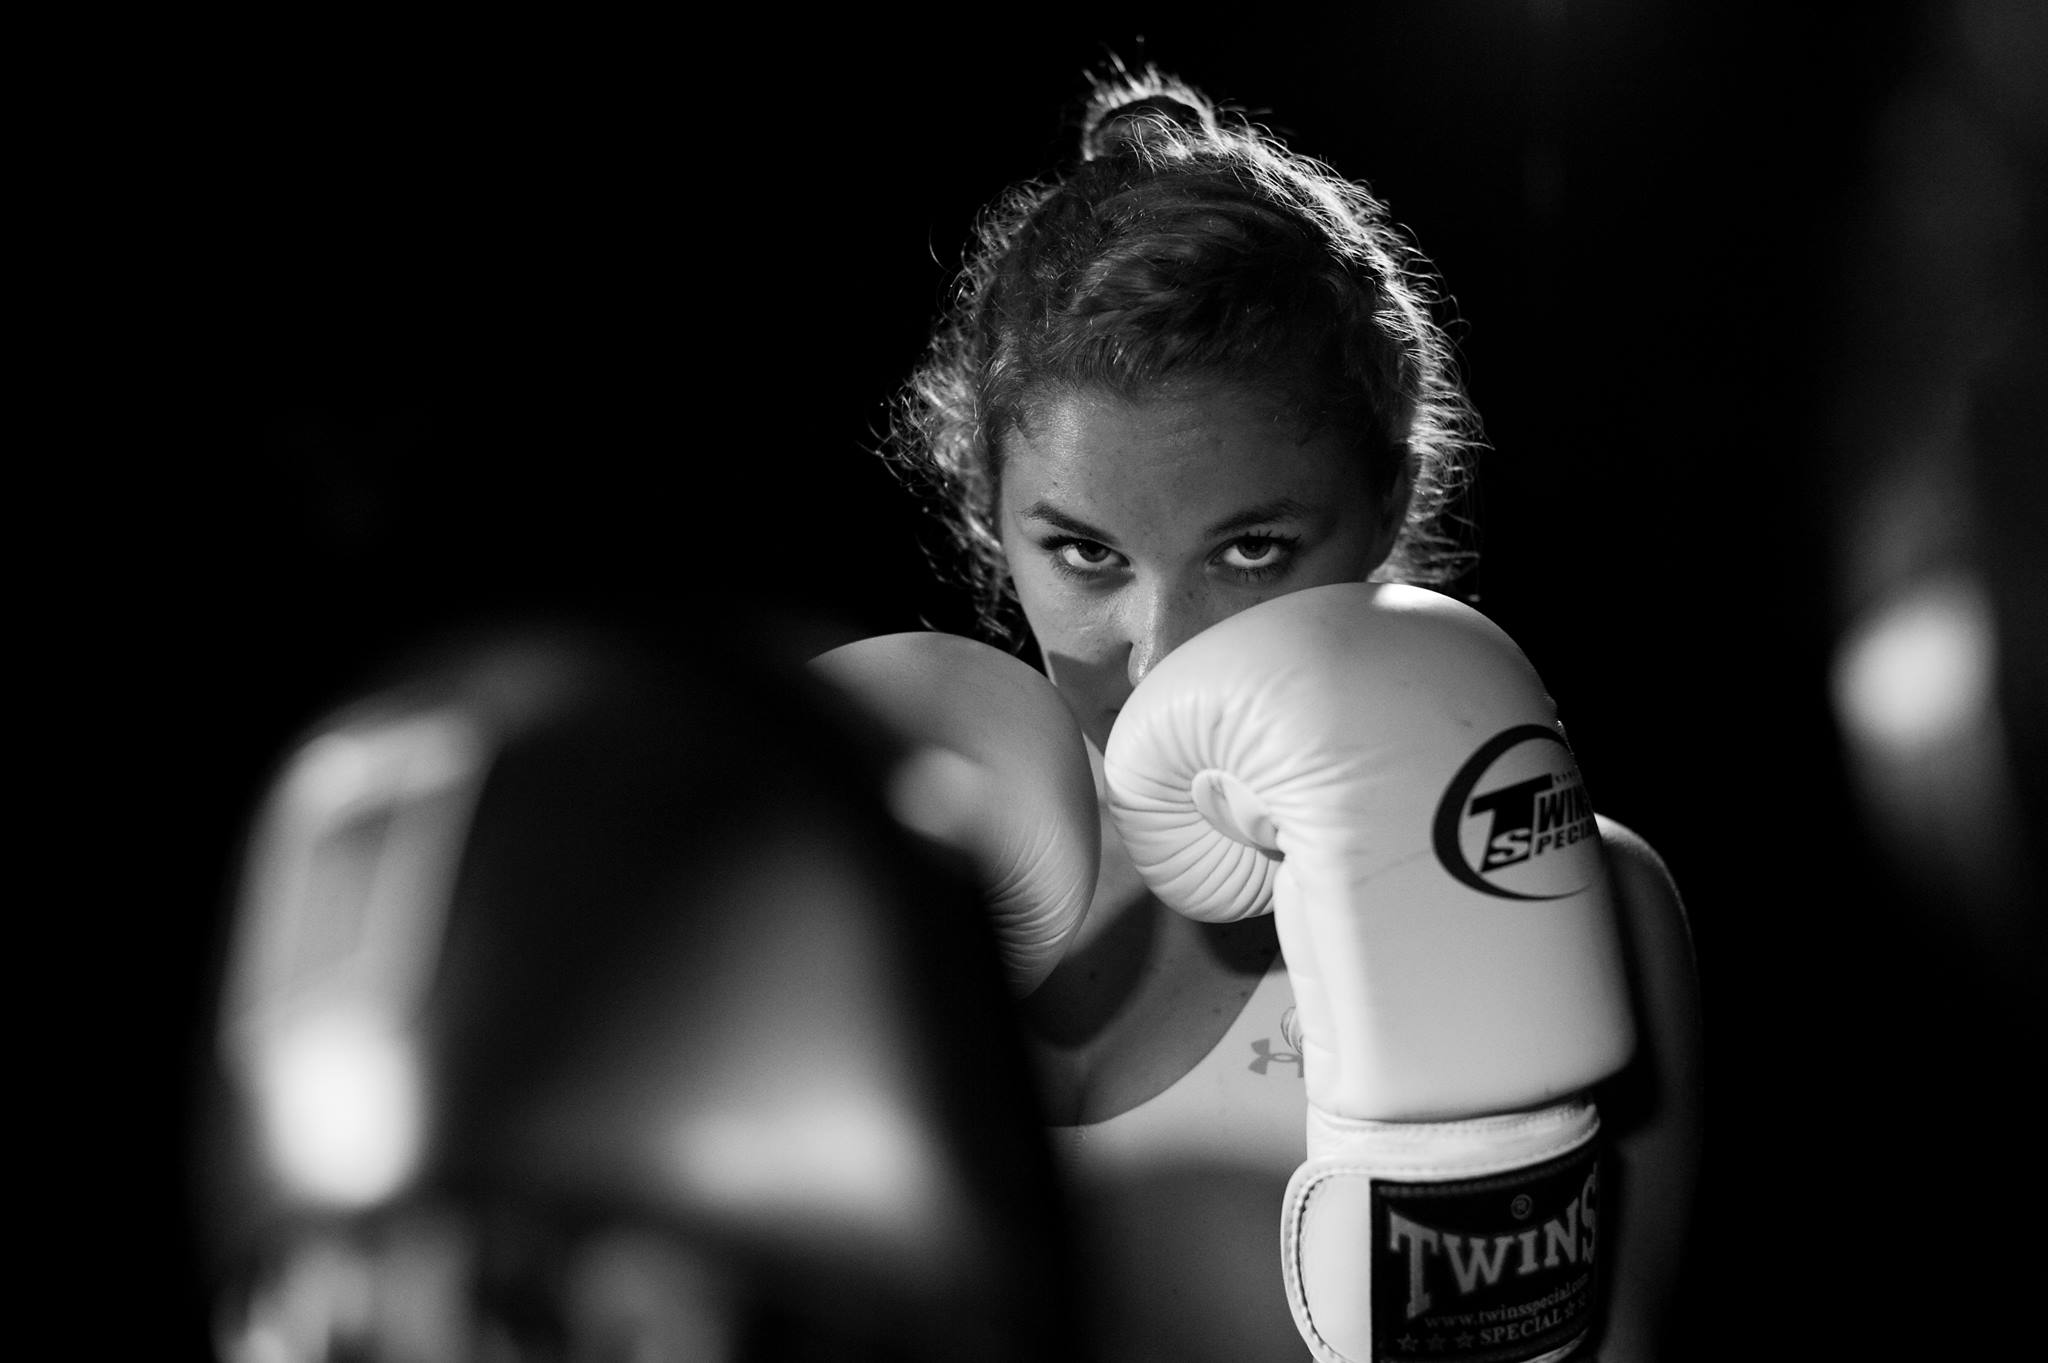 8 tips to fight against your fears